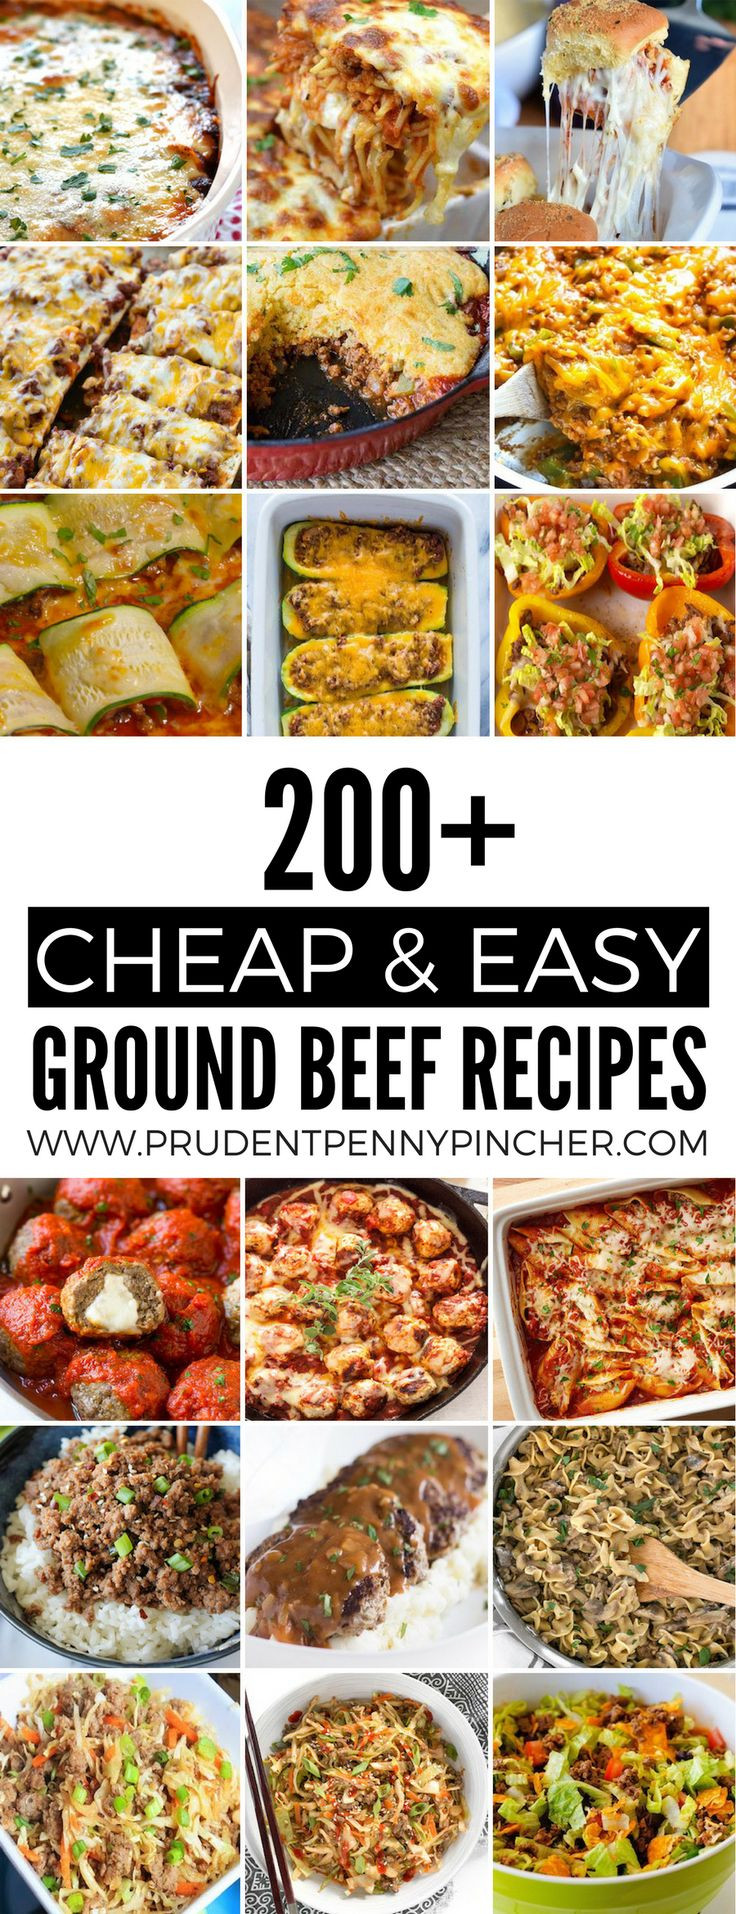 Cheap Ground Beef Recipes  Get 20 Cheap recipes ideas on Pinterest without signing